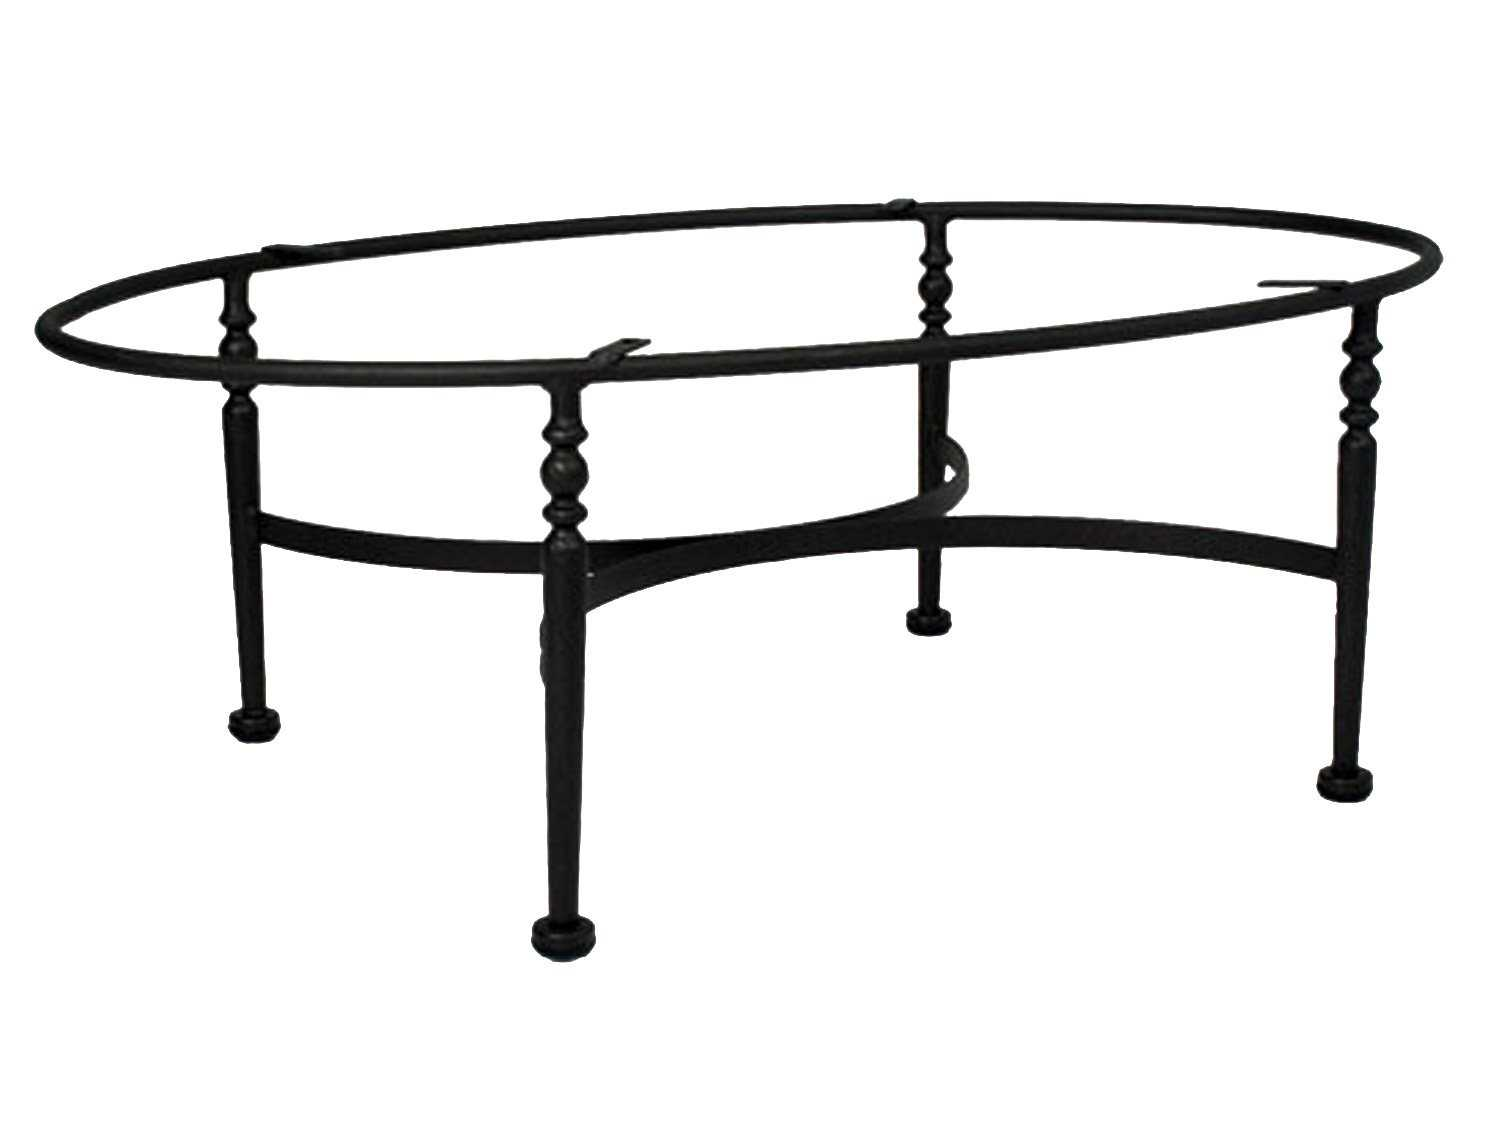 Meadowcraft athens wrought iron coffee table base 3613370 01 Wrought iron coffee table bases